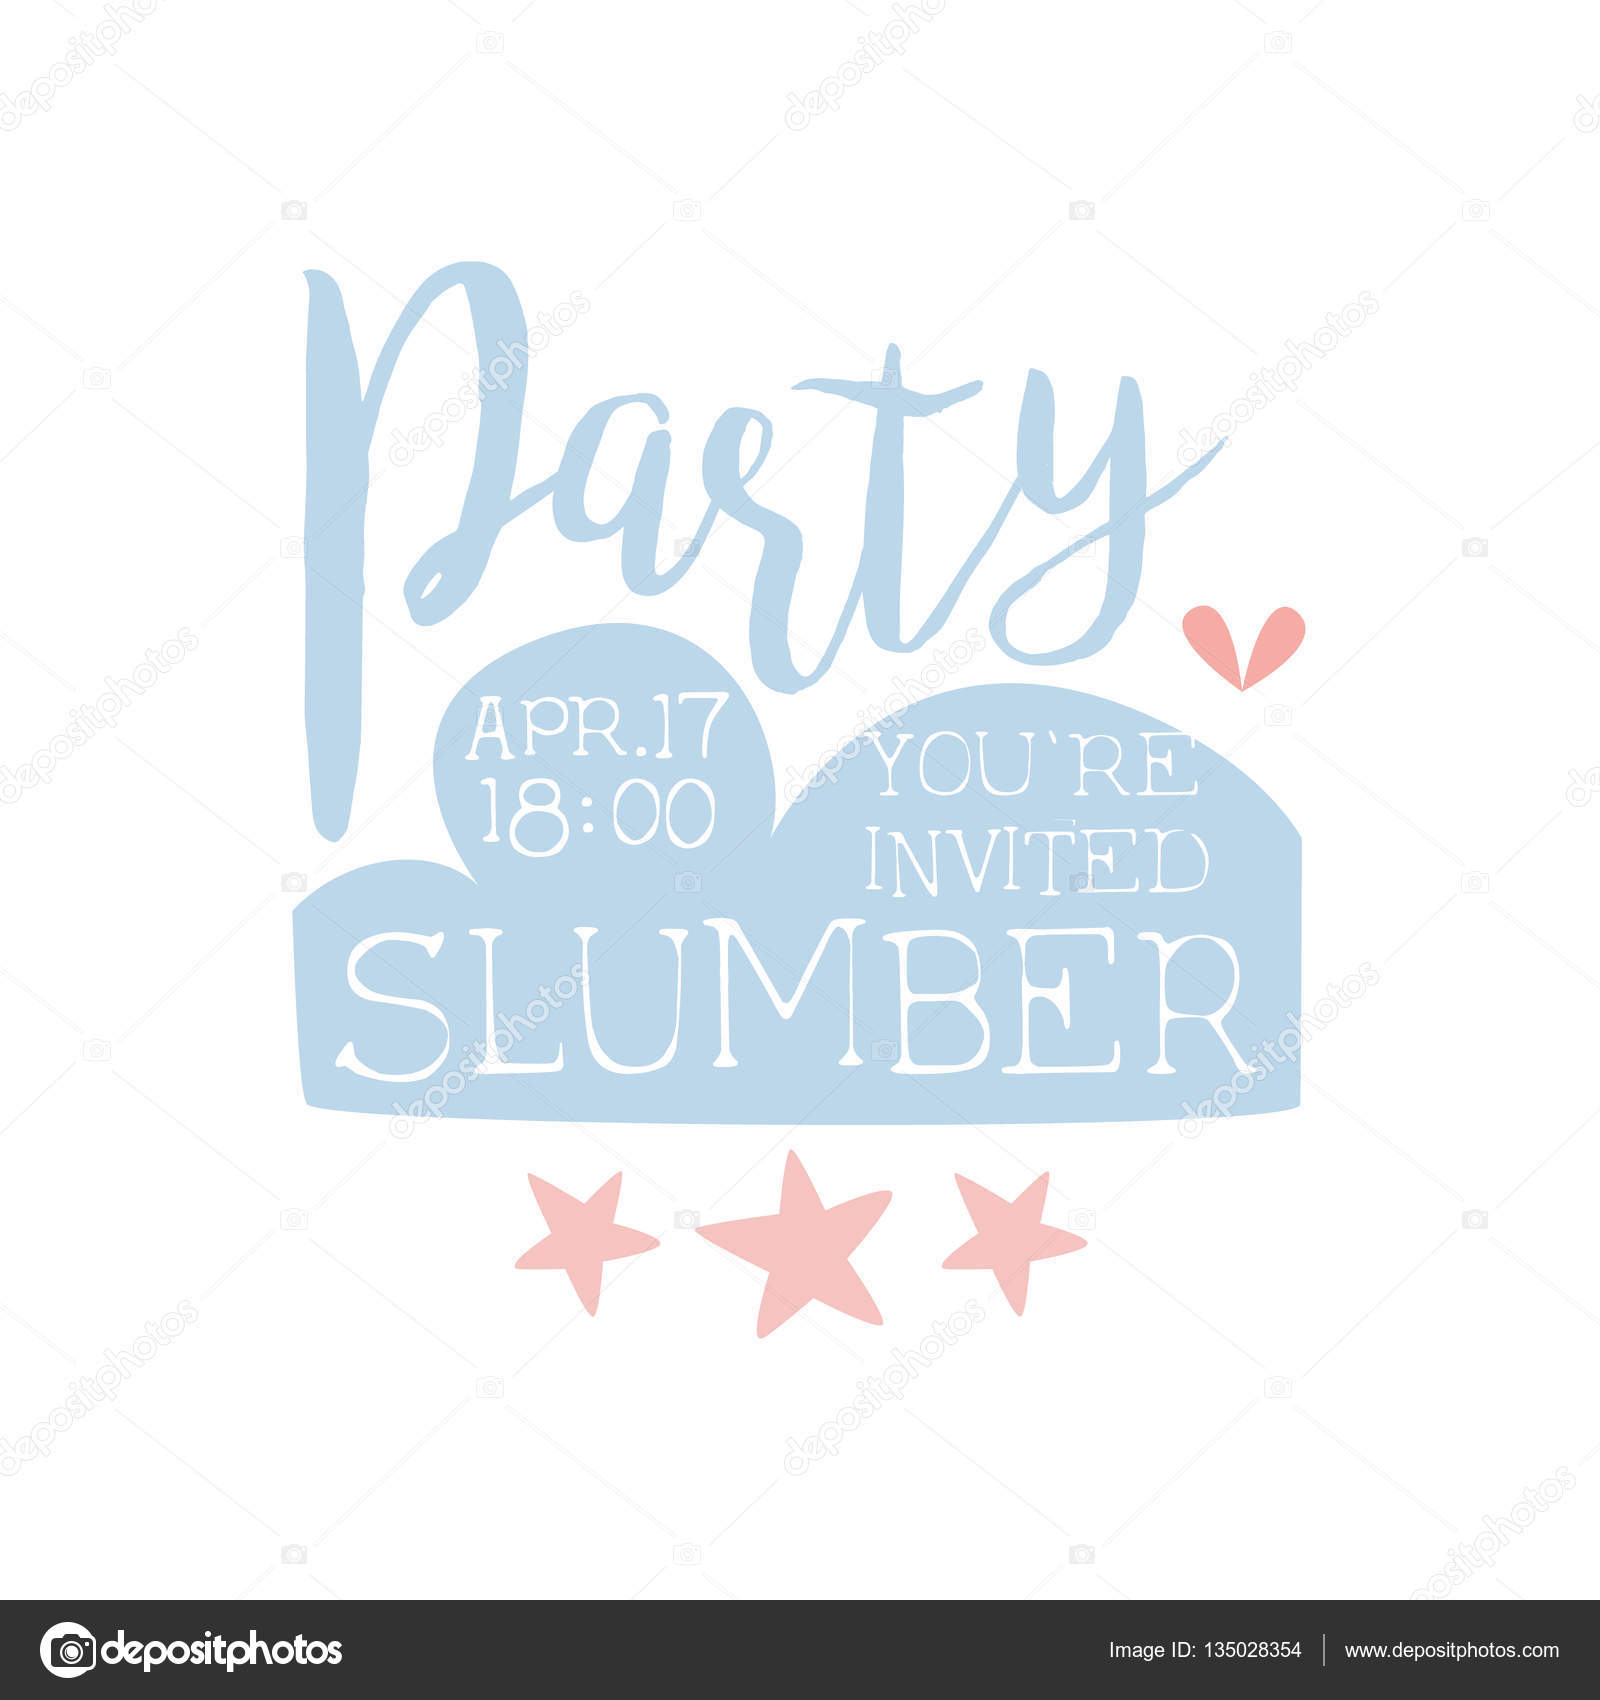 Girly Pajama Party Invitation Card Template With Stars Inviting Kids ...